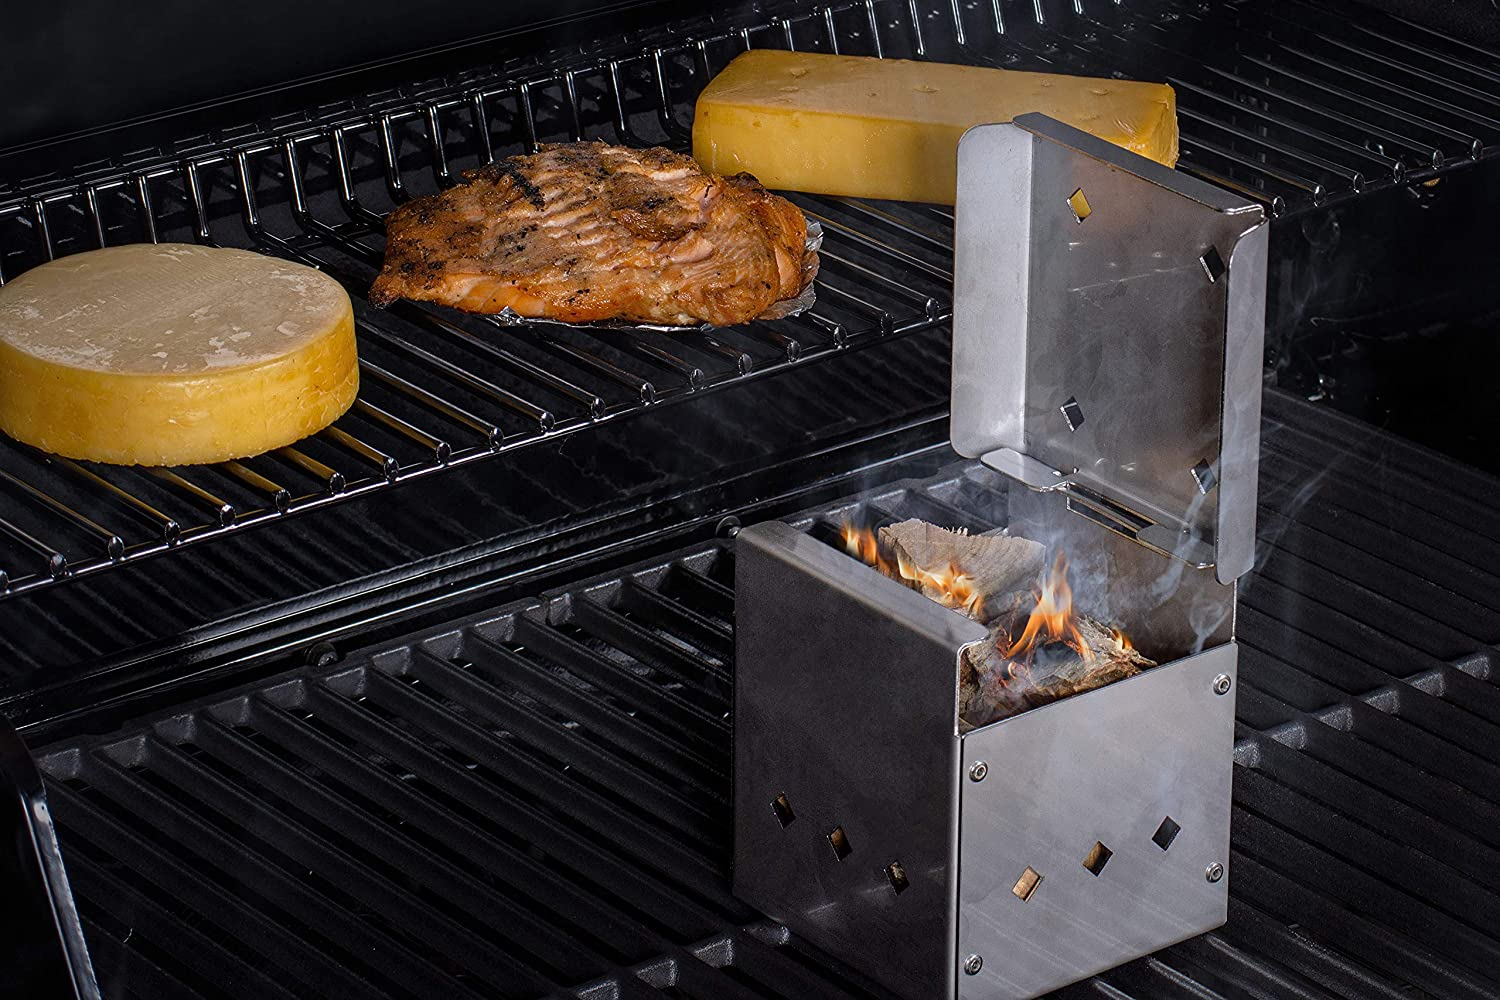 DKS Smoker Cooker Box for Grill   Turn Any BBQ Grill Into A Smoker   No Propane or Charcoal Needed   Provides All The Heat and Smoke to Cook Any Food (64 cu inches)